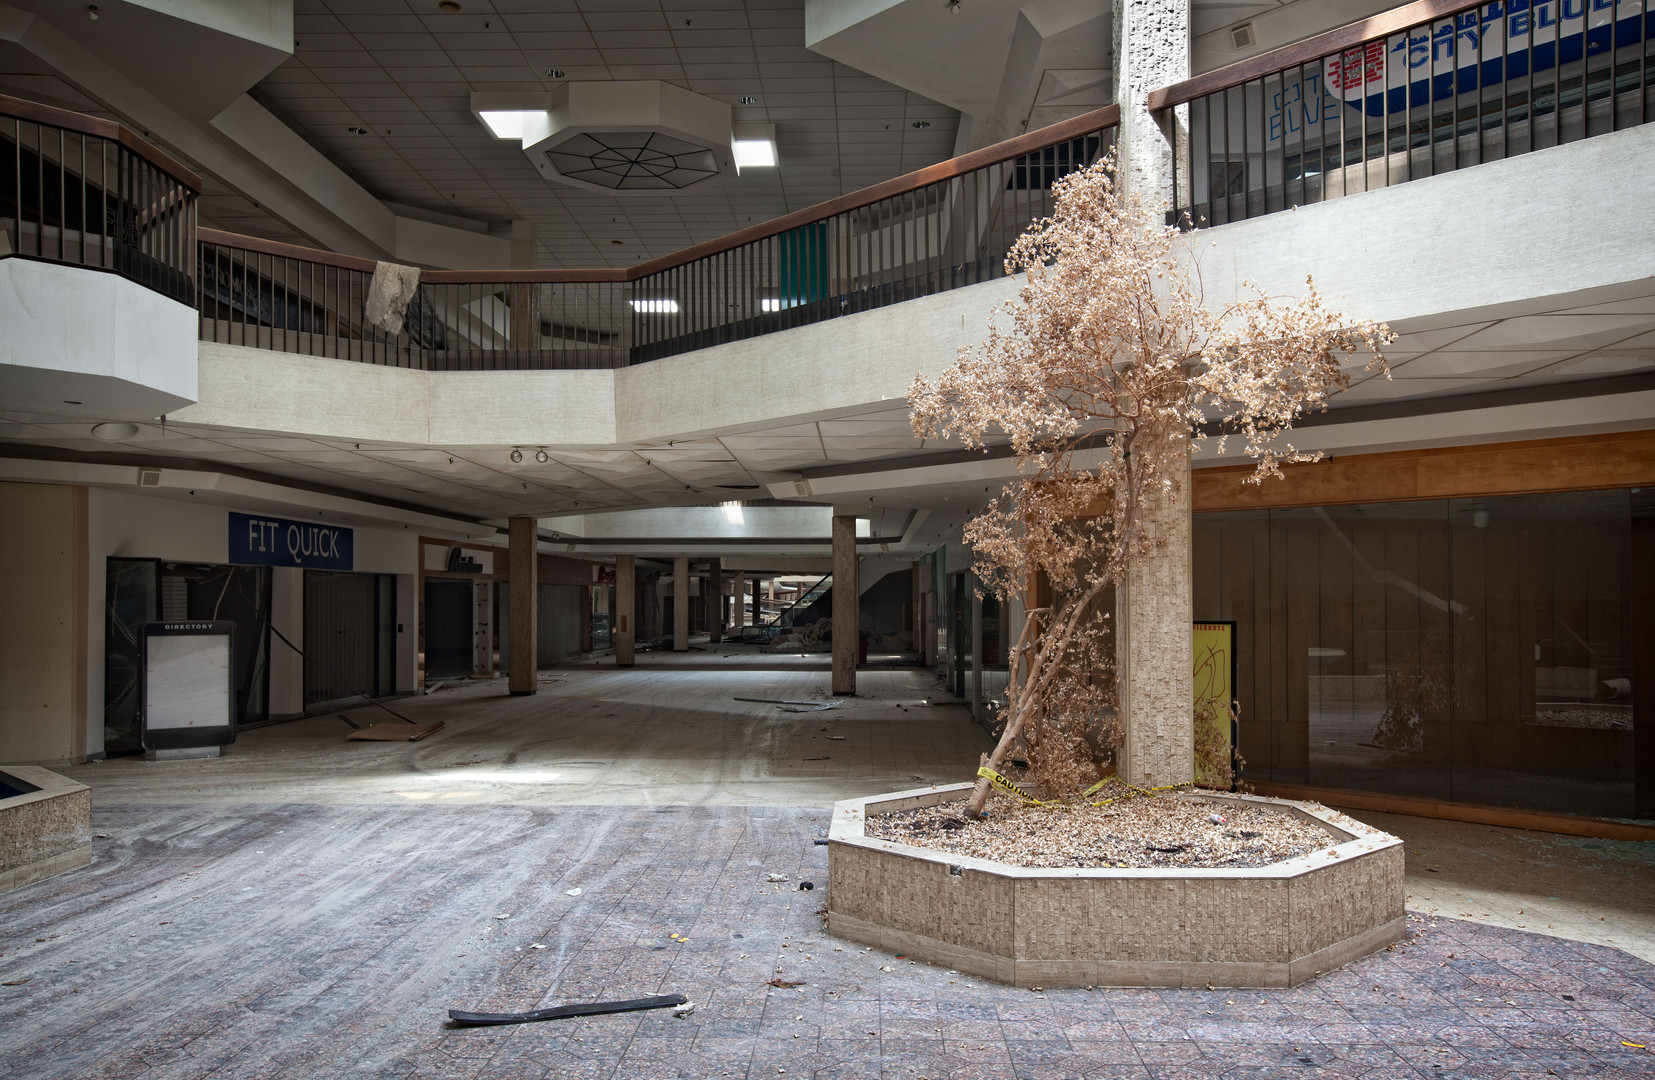 Randall Park Mall | Parched Tree